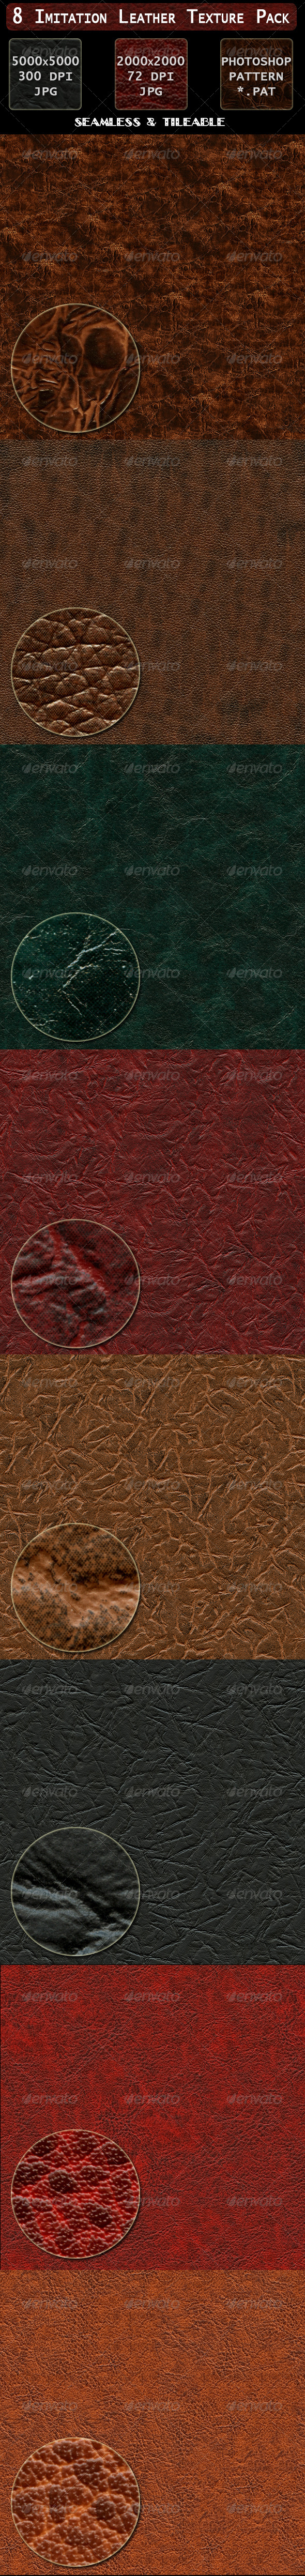 8 Imitation Leather Texture Pack - Fabric Textures